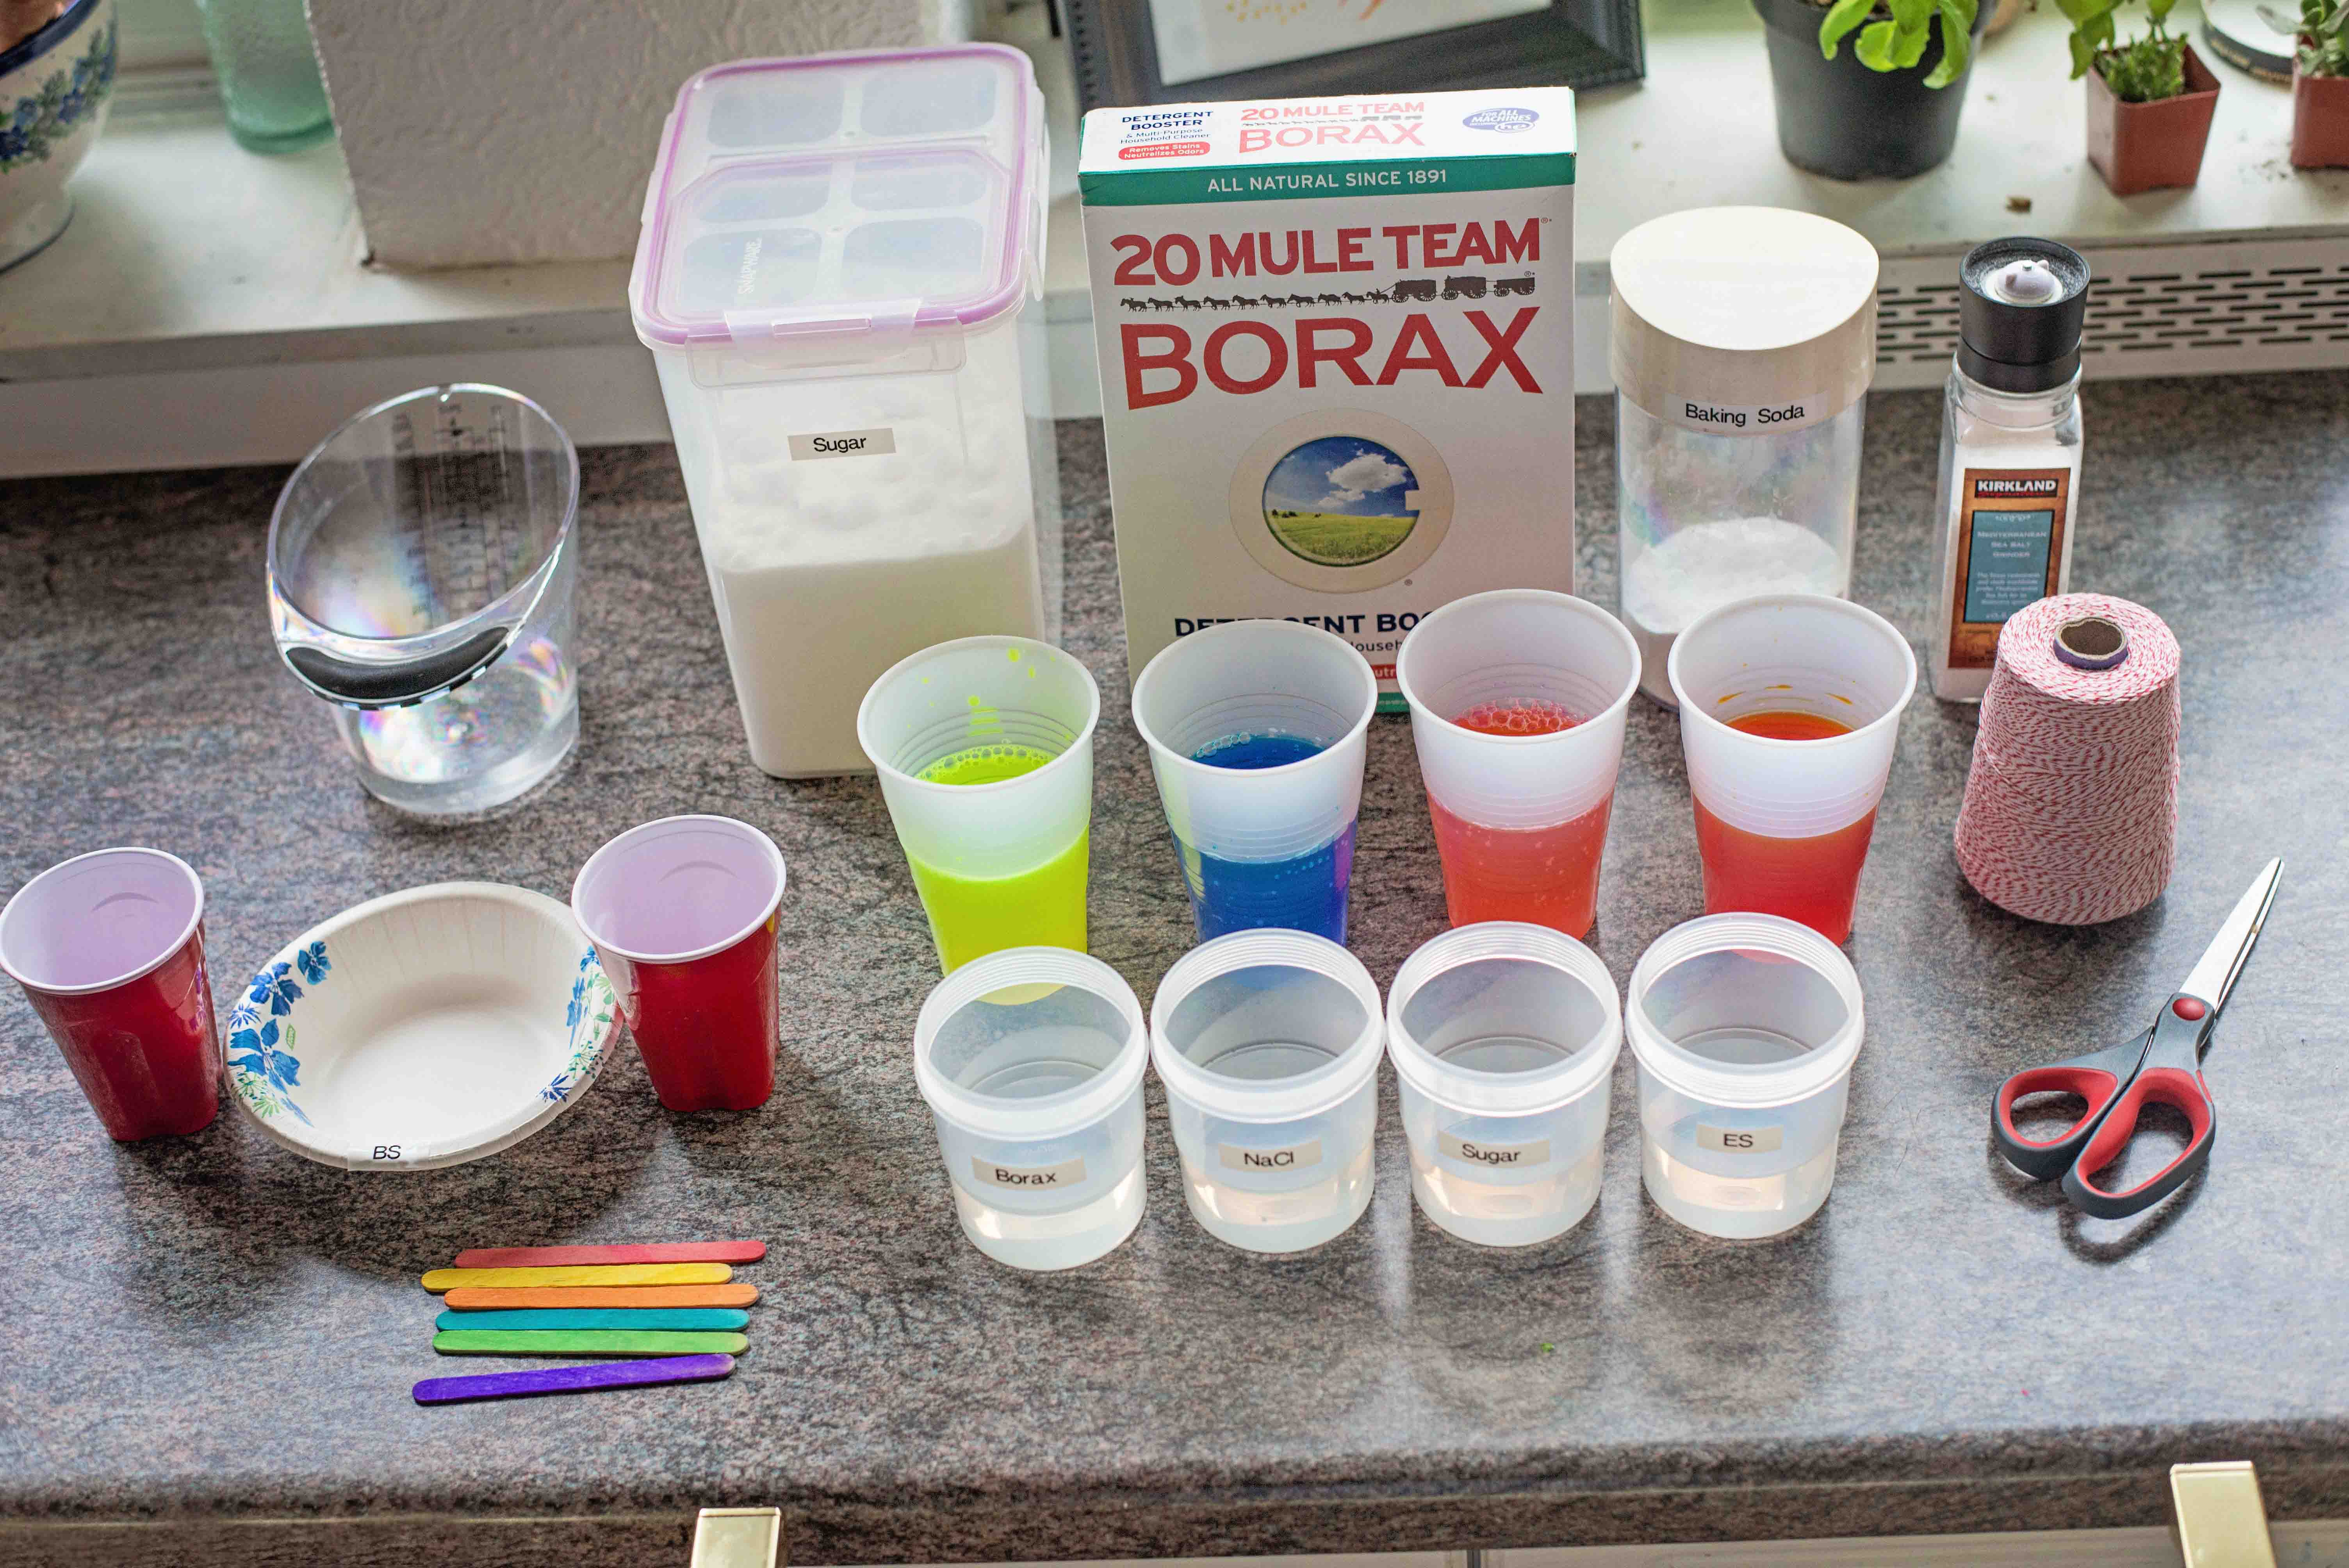 borax crystal diagram 12v photocell switch wiring growing glowing crystals parentsavvy how to grow and what do with them once you re